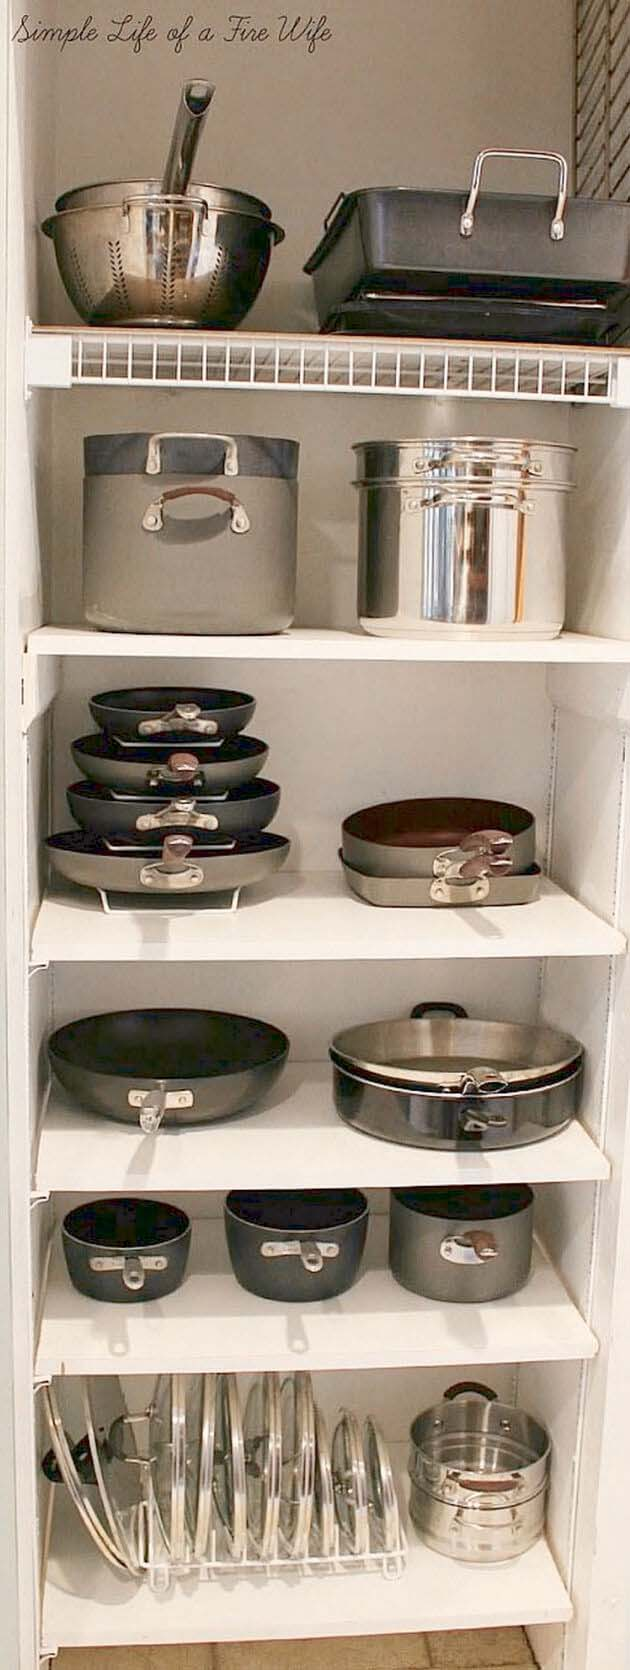 A Storage Cabinet for Pots and Pans #smallkitchen #storage #organization #decorhomeideas